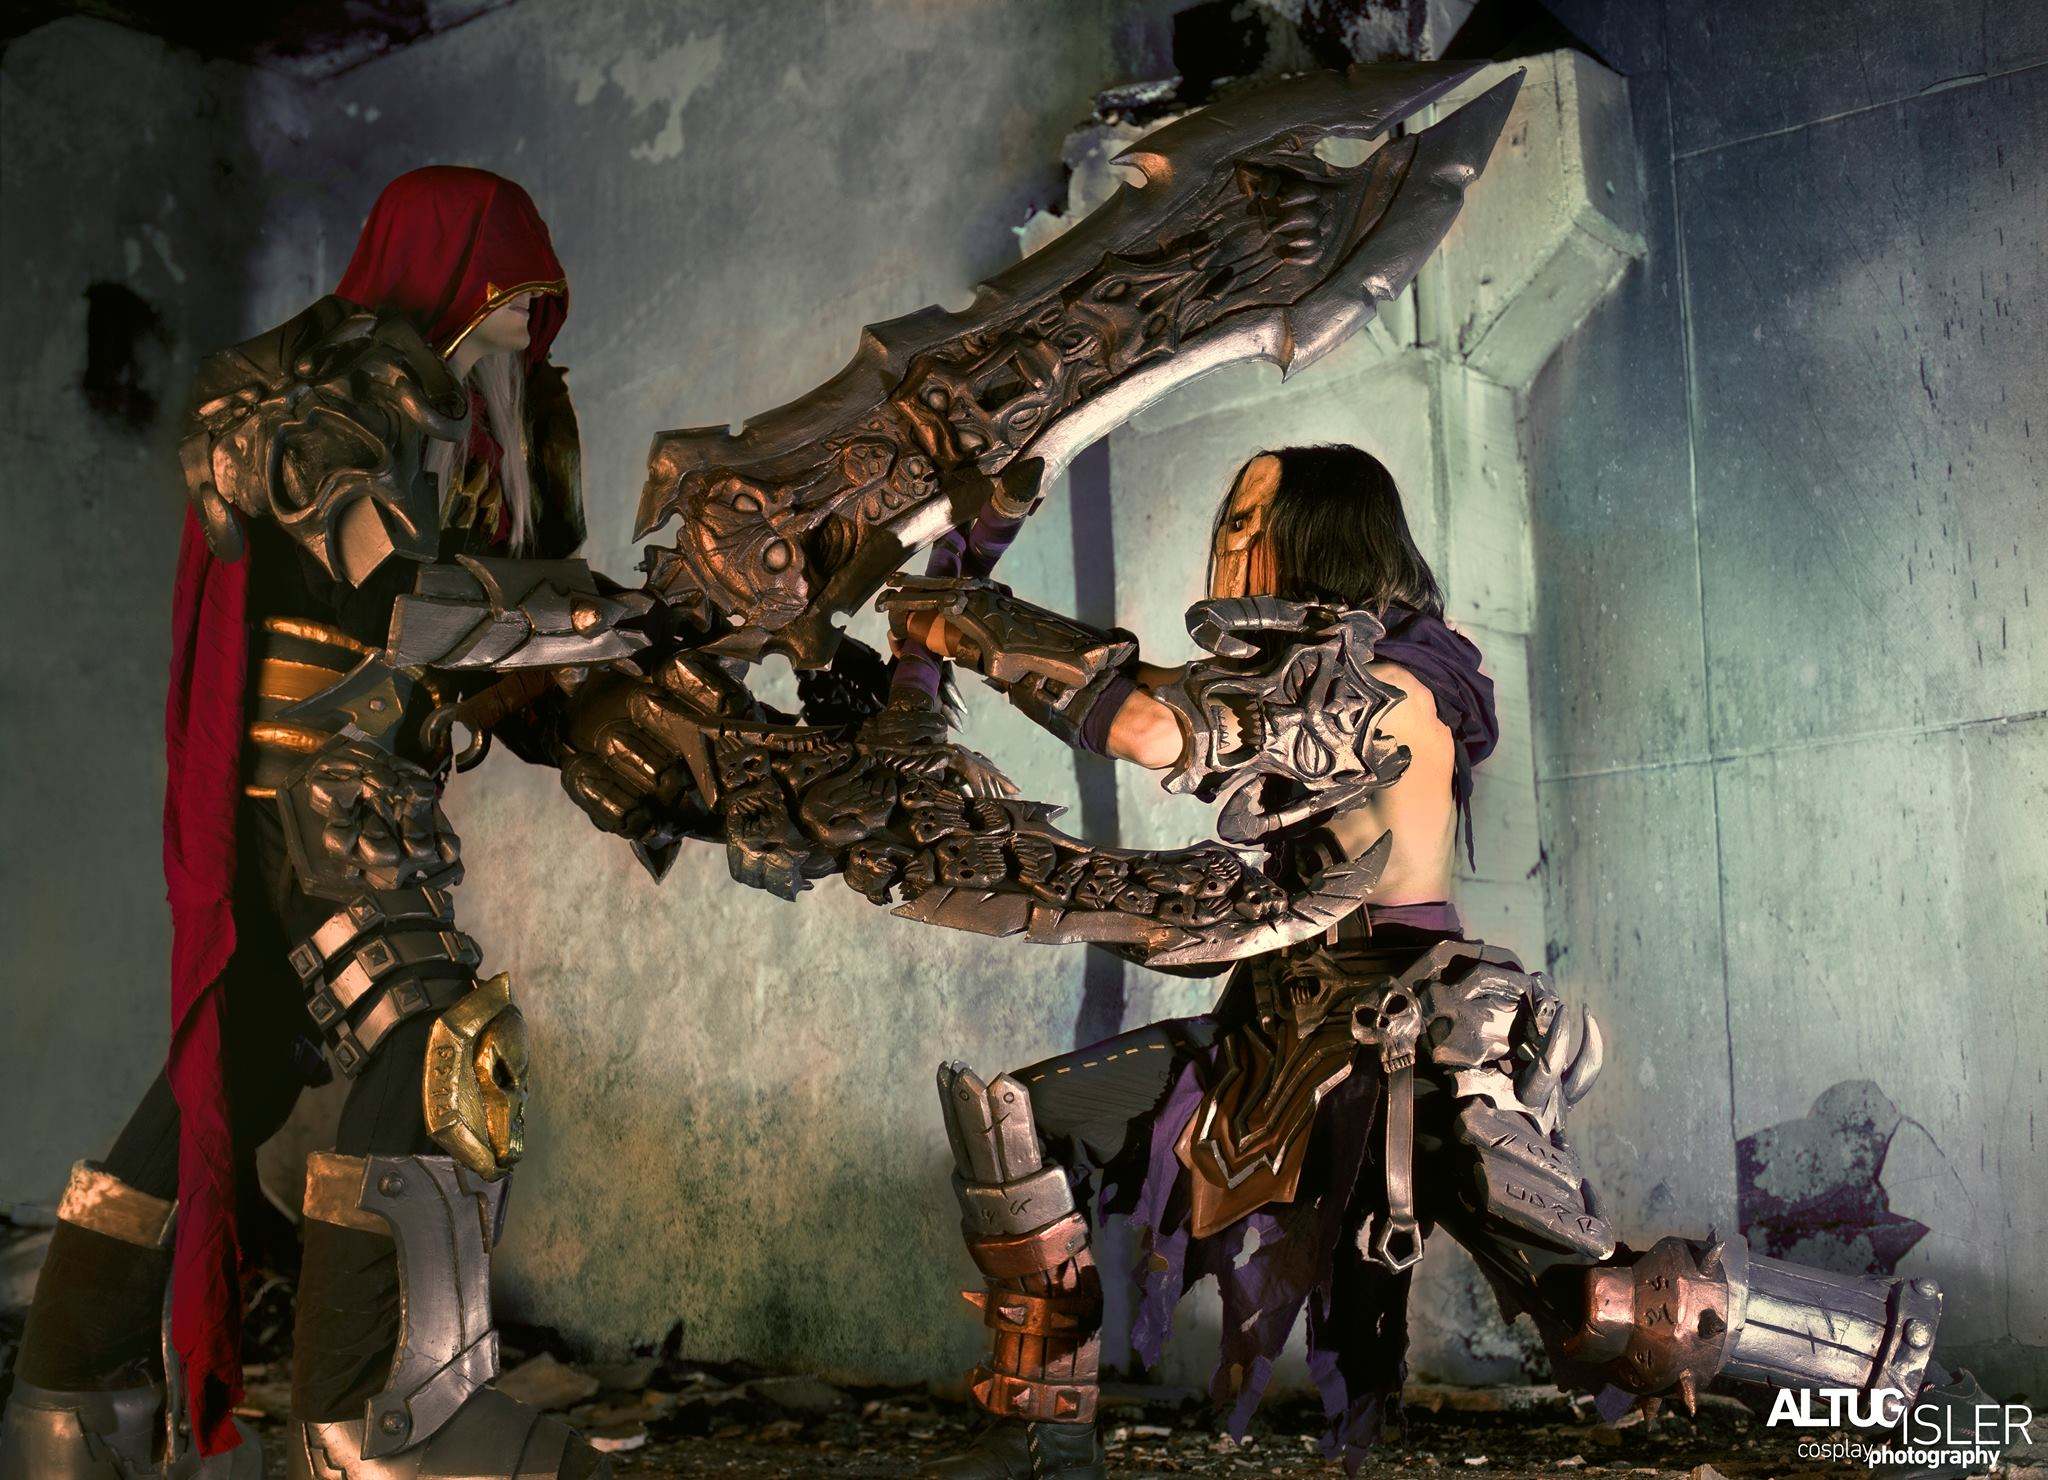 Death | Darksiders Wiki | FANDOM powered by Wikia